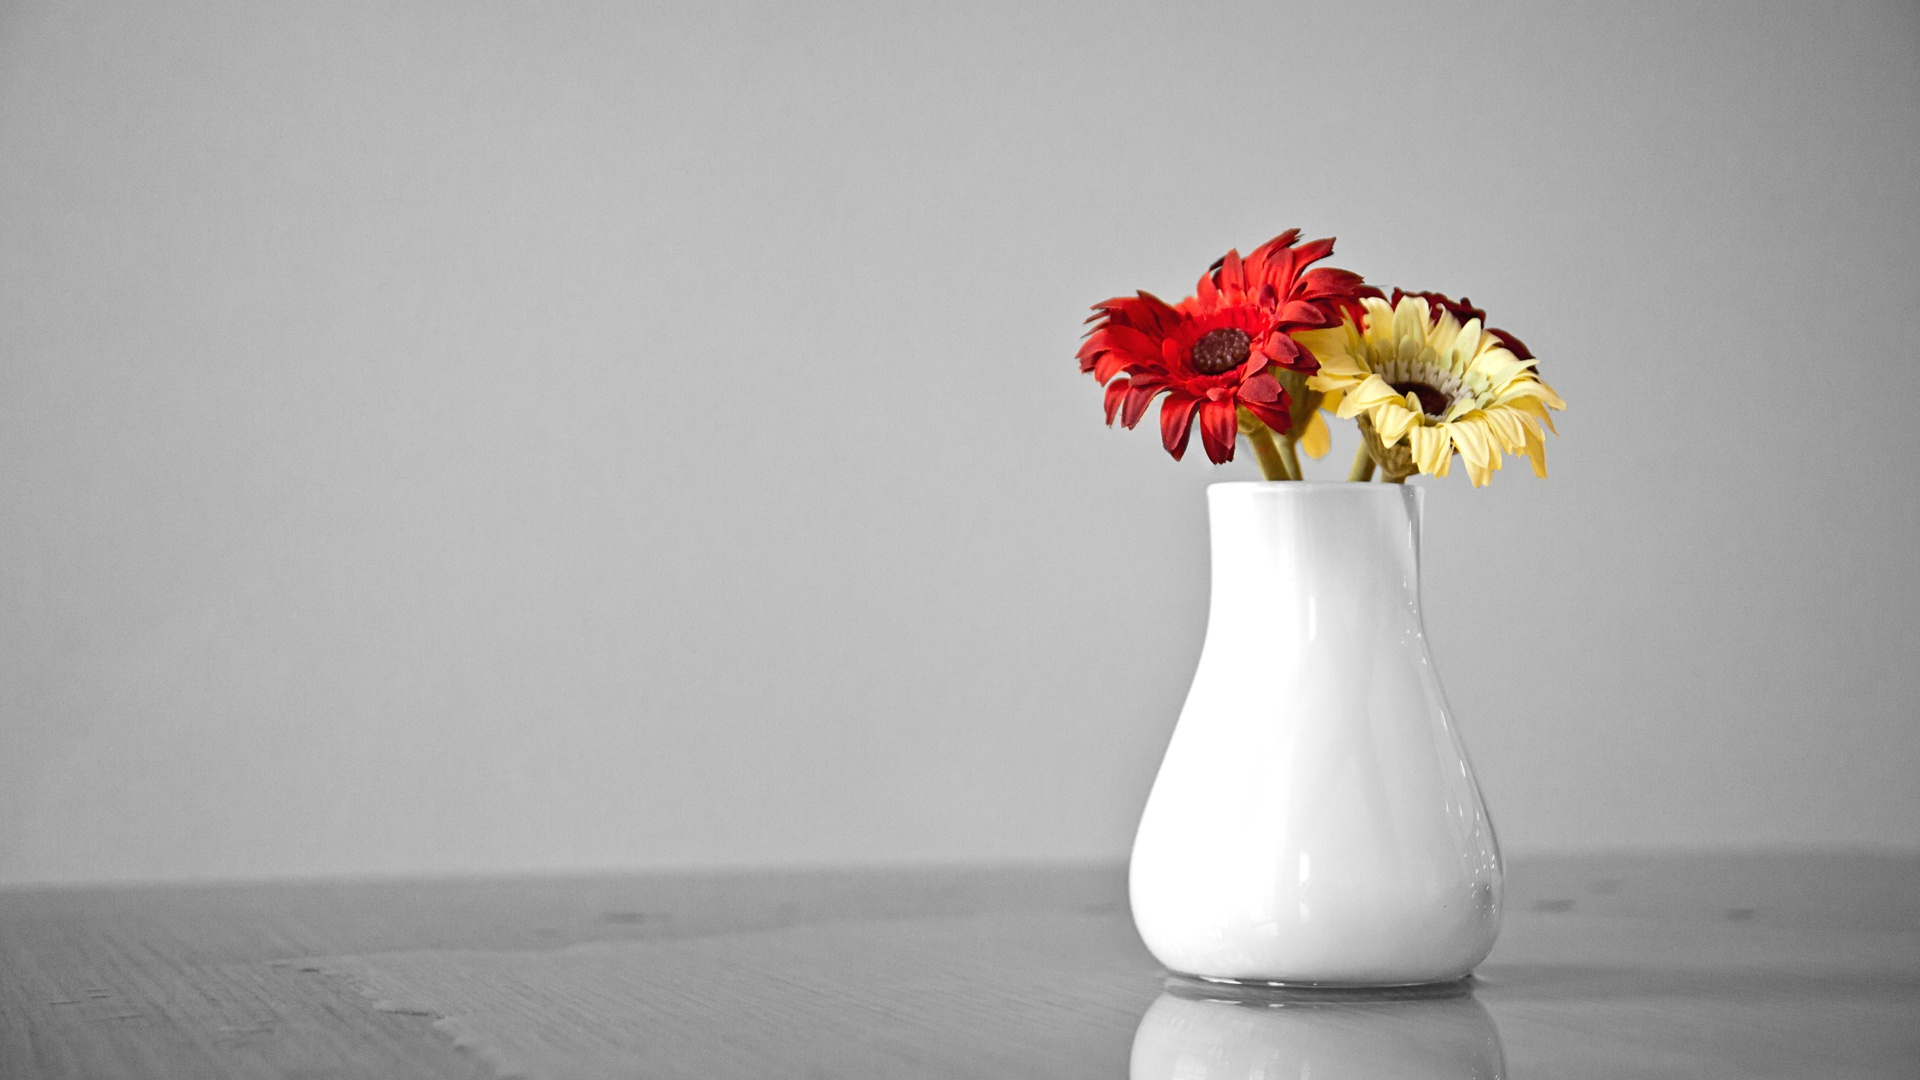 Flower Pot Wallpaper